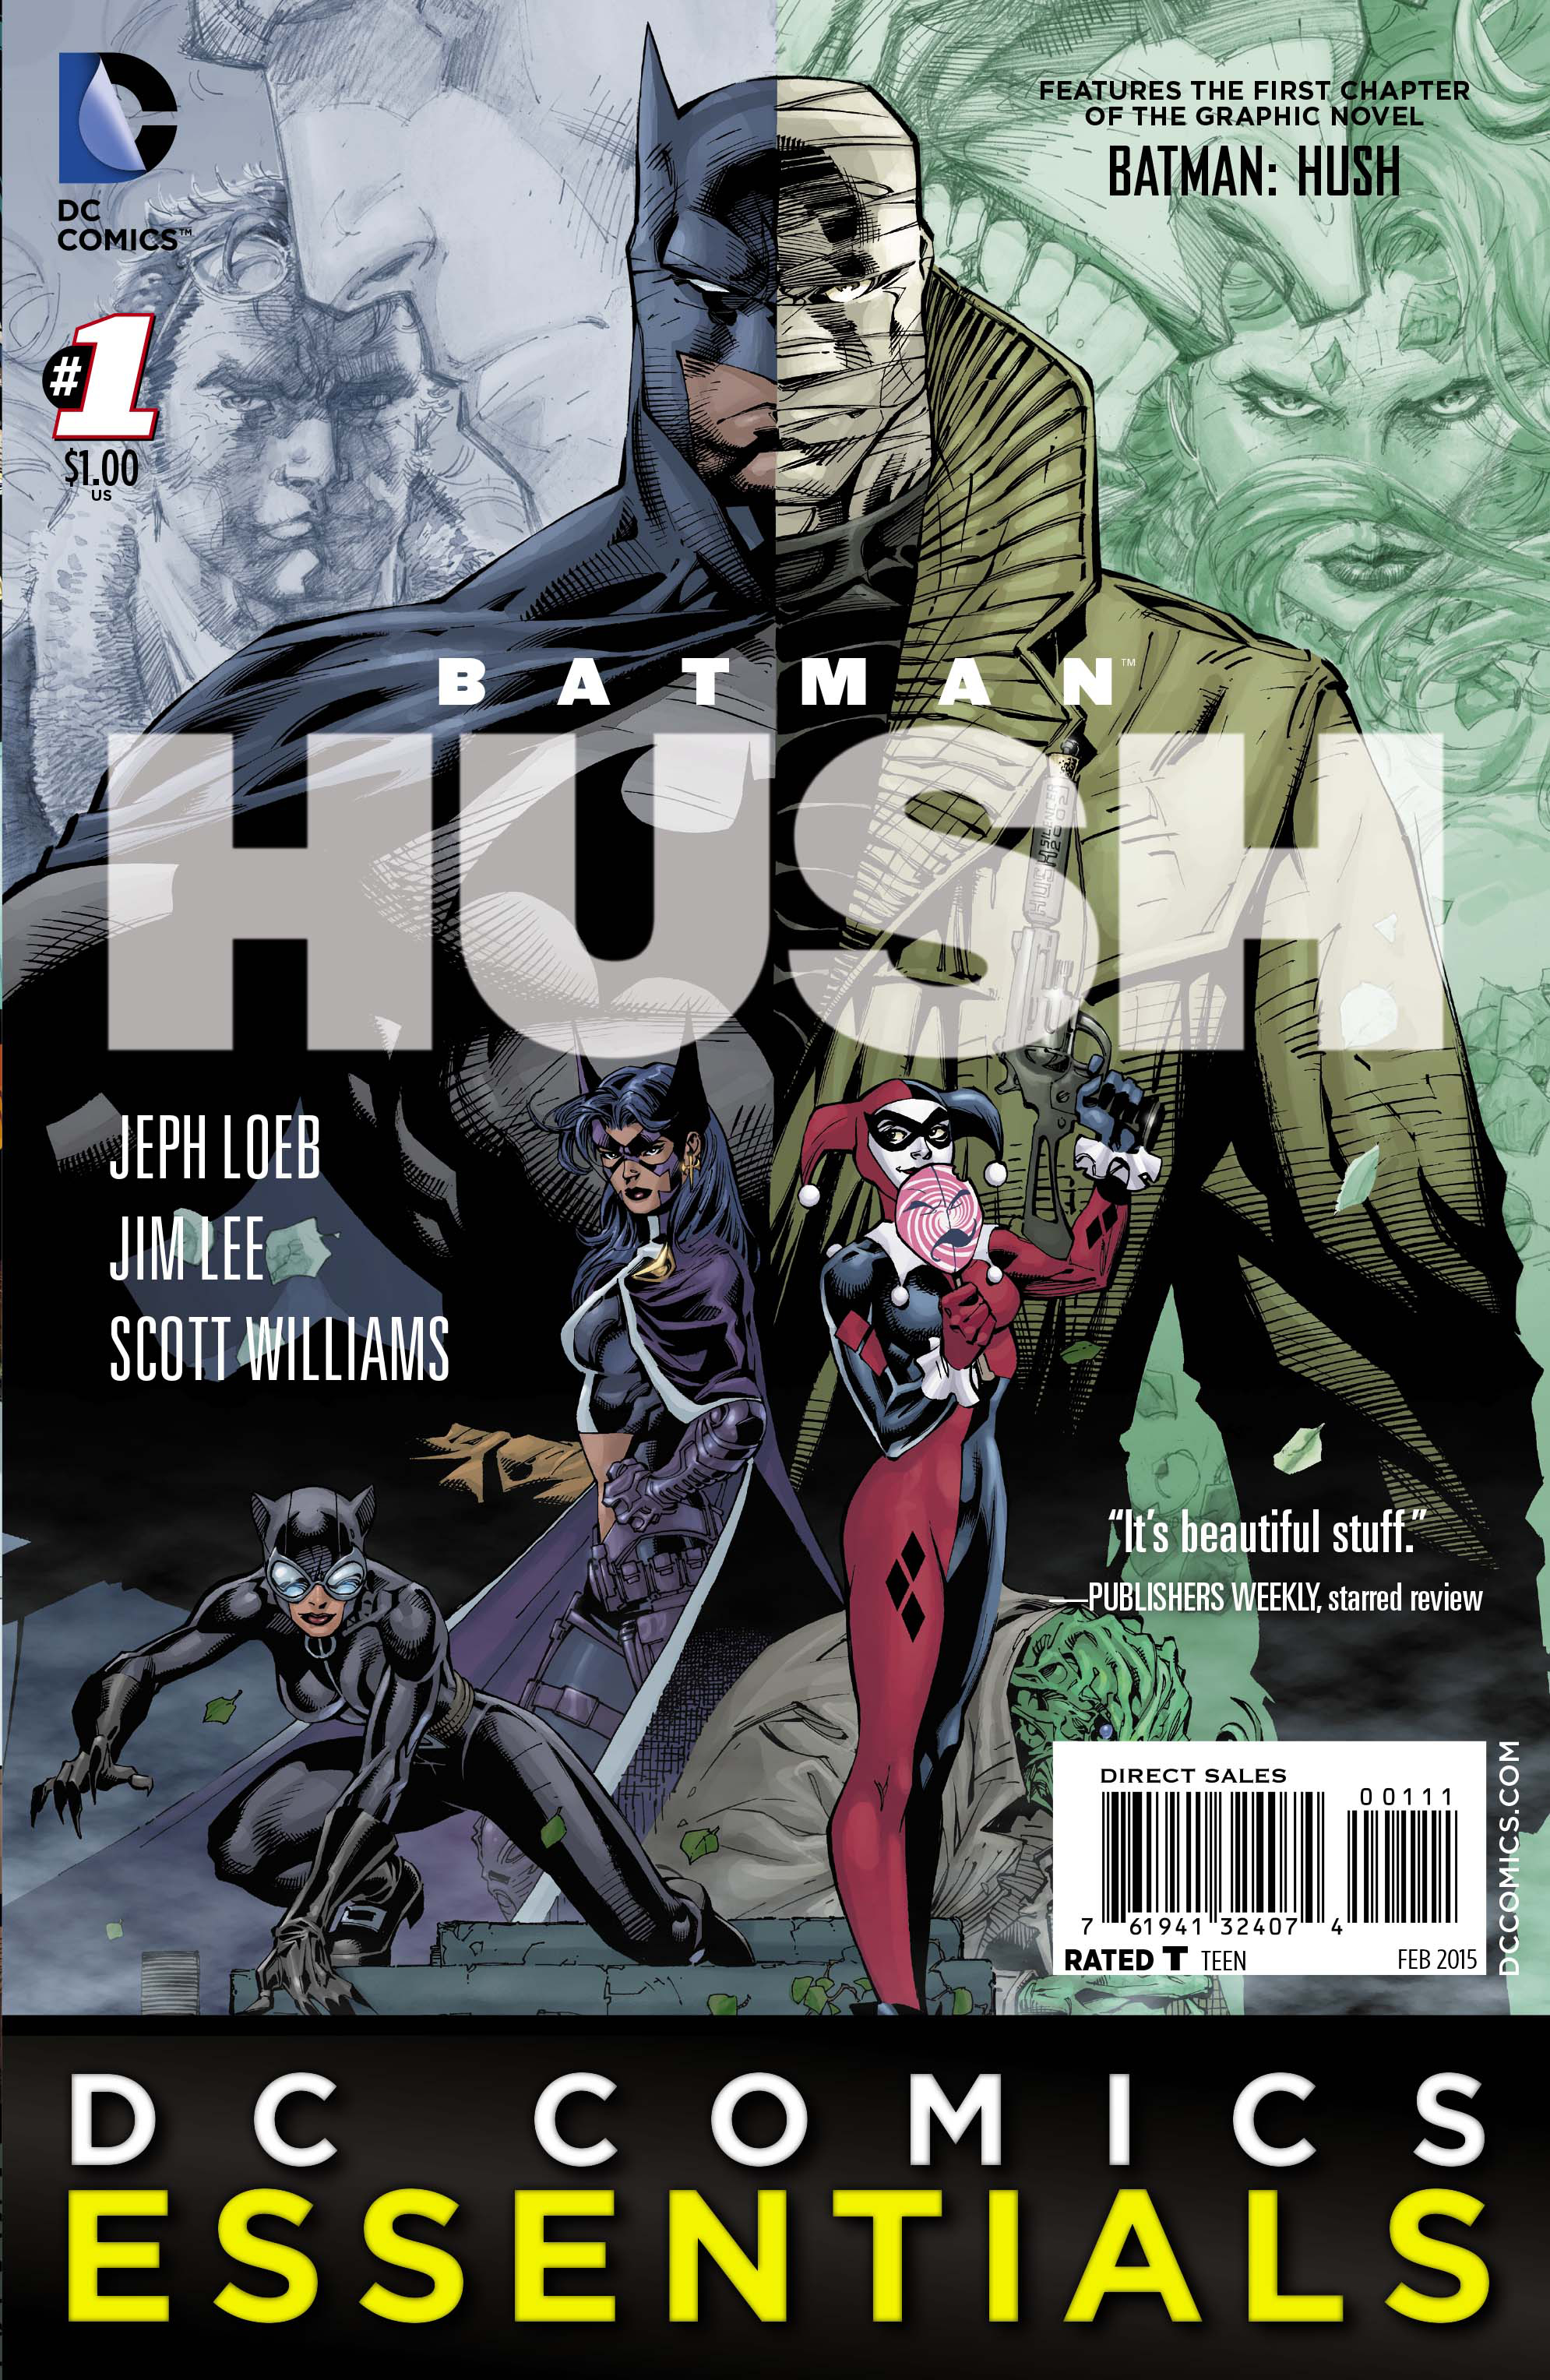 BATMAN ESSENTIALS BATMAN HUSH #1